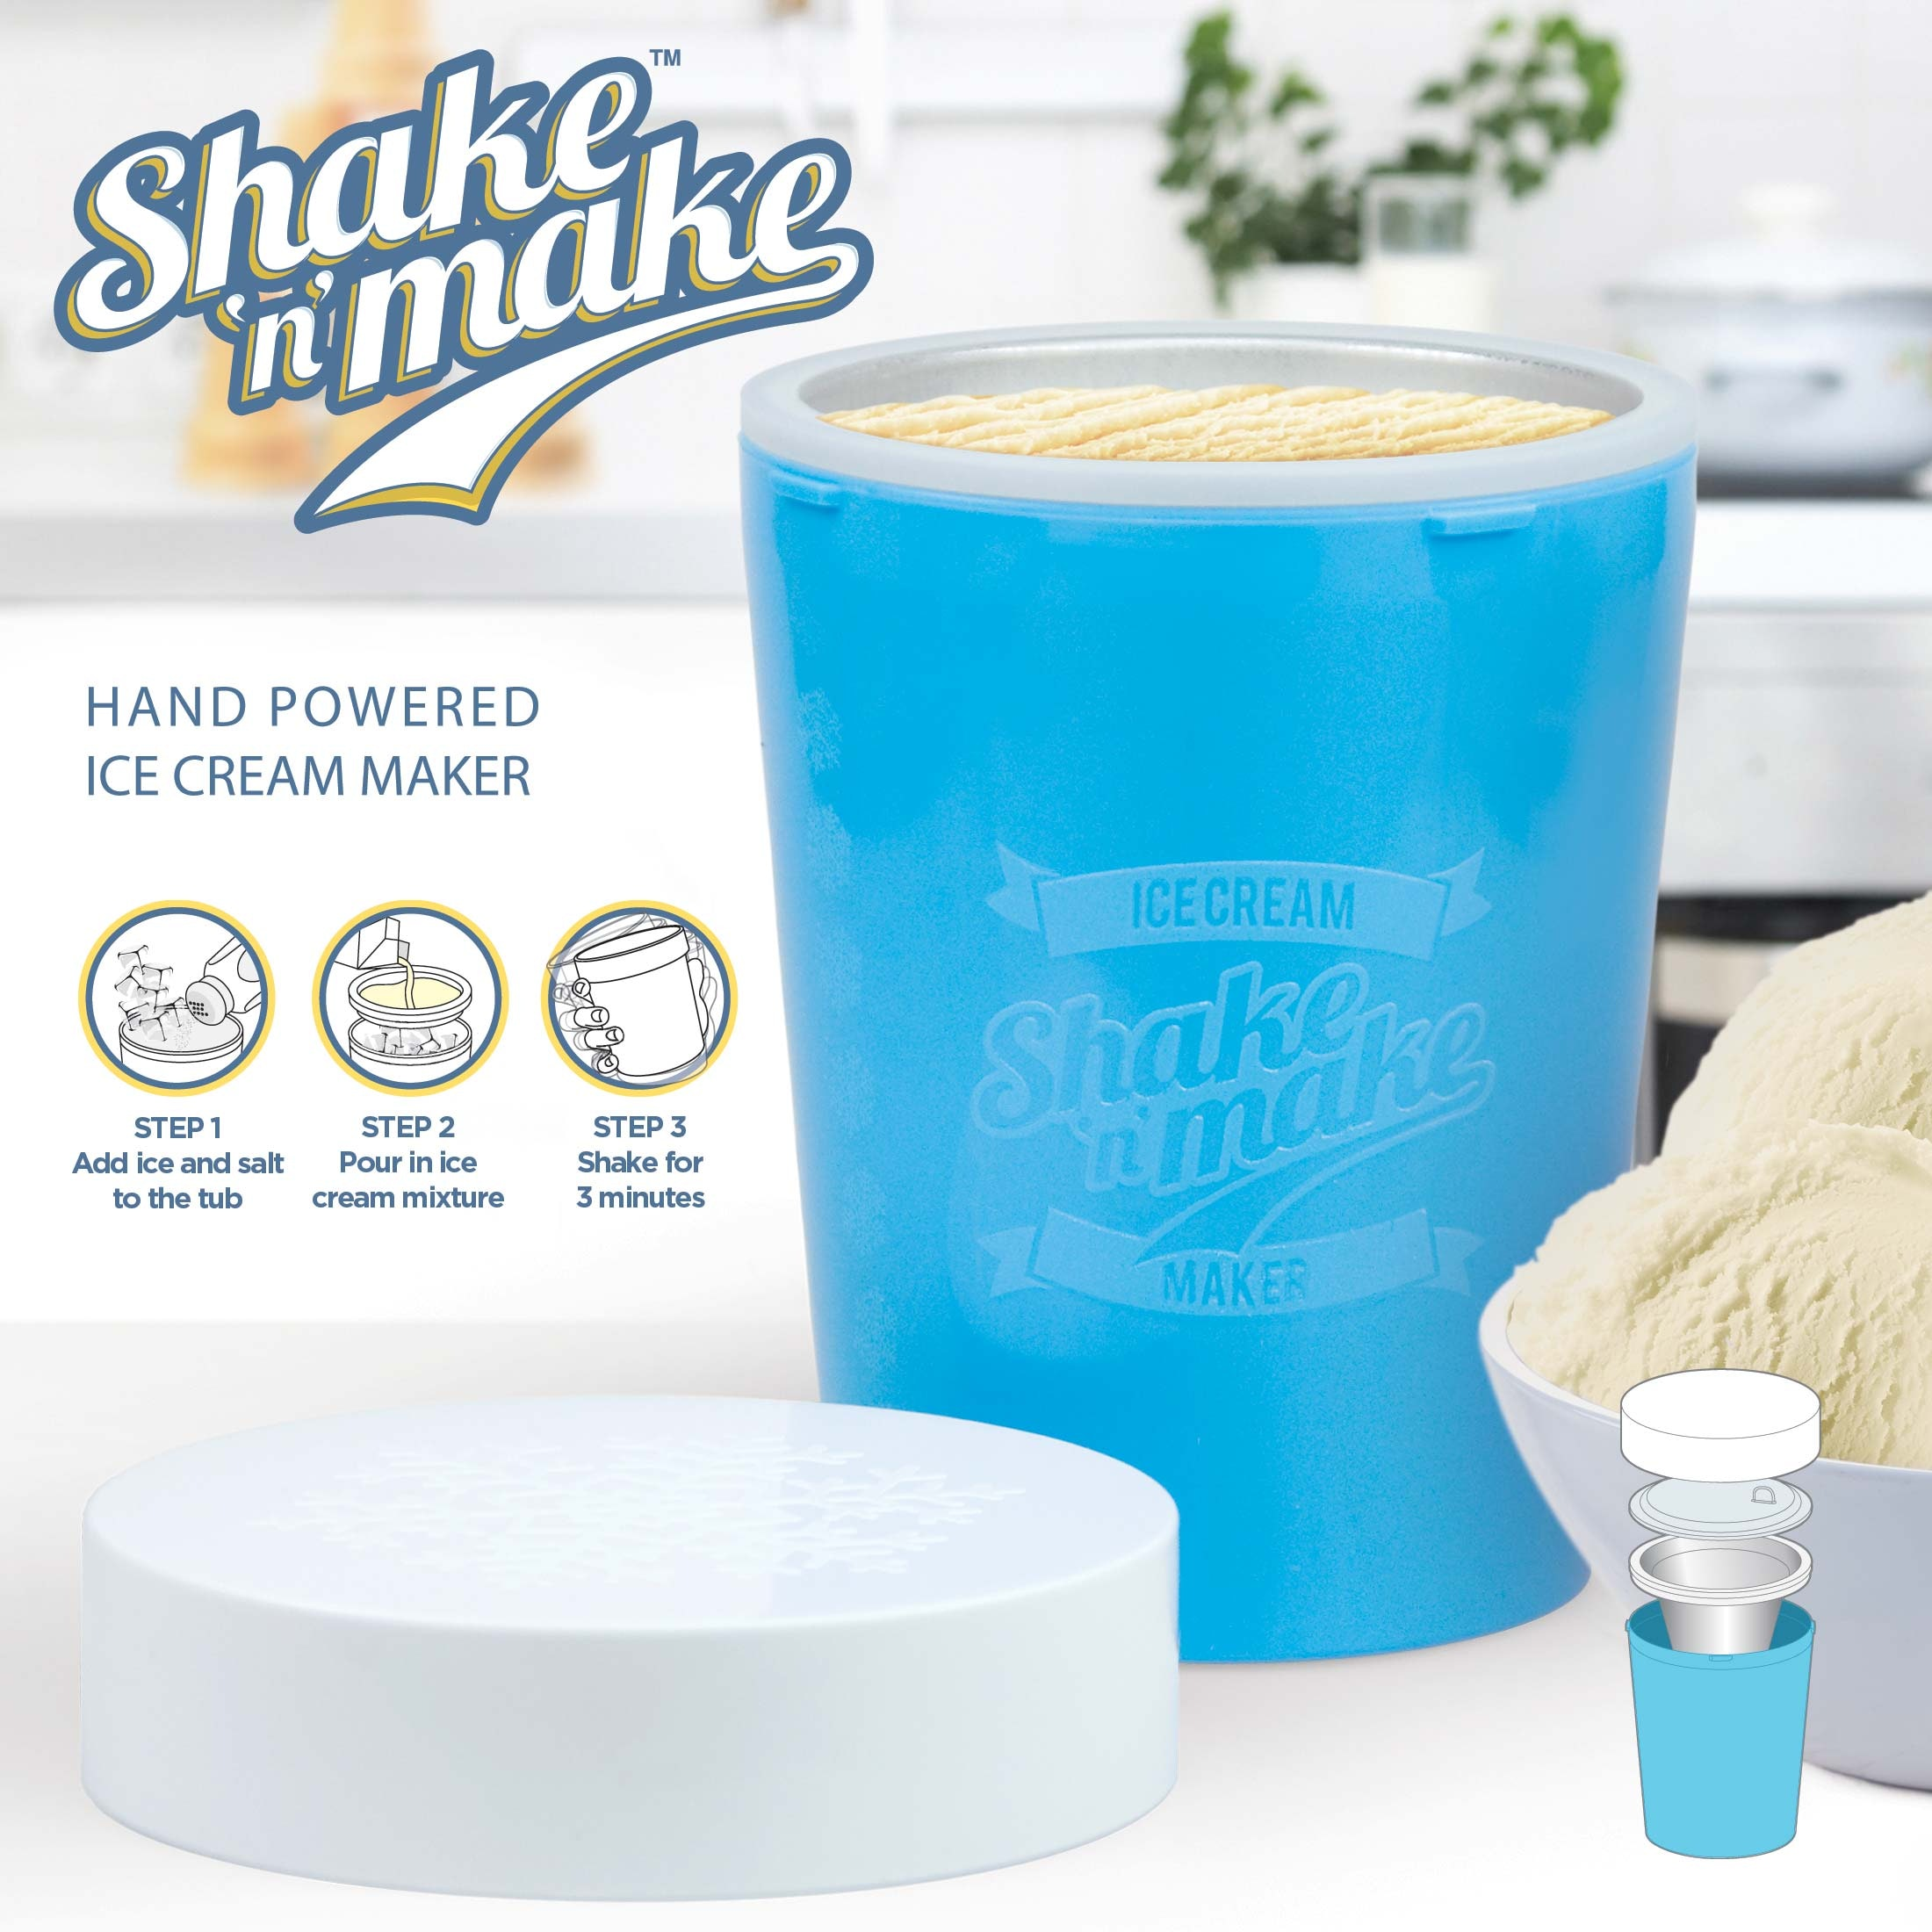 Shake 'n' Make sweepstakes